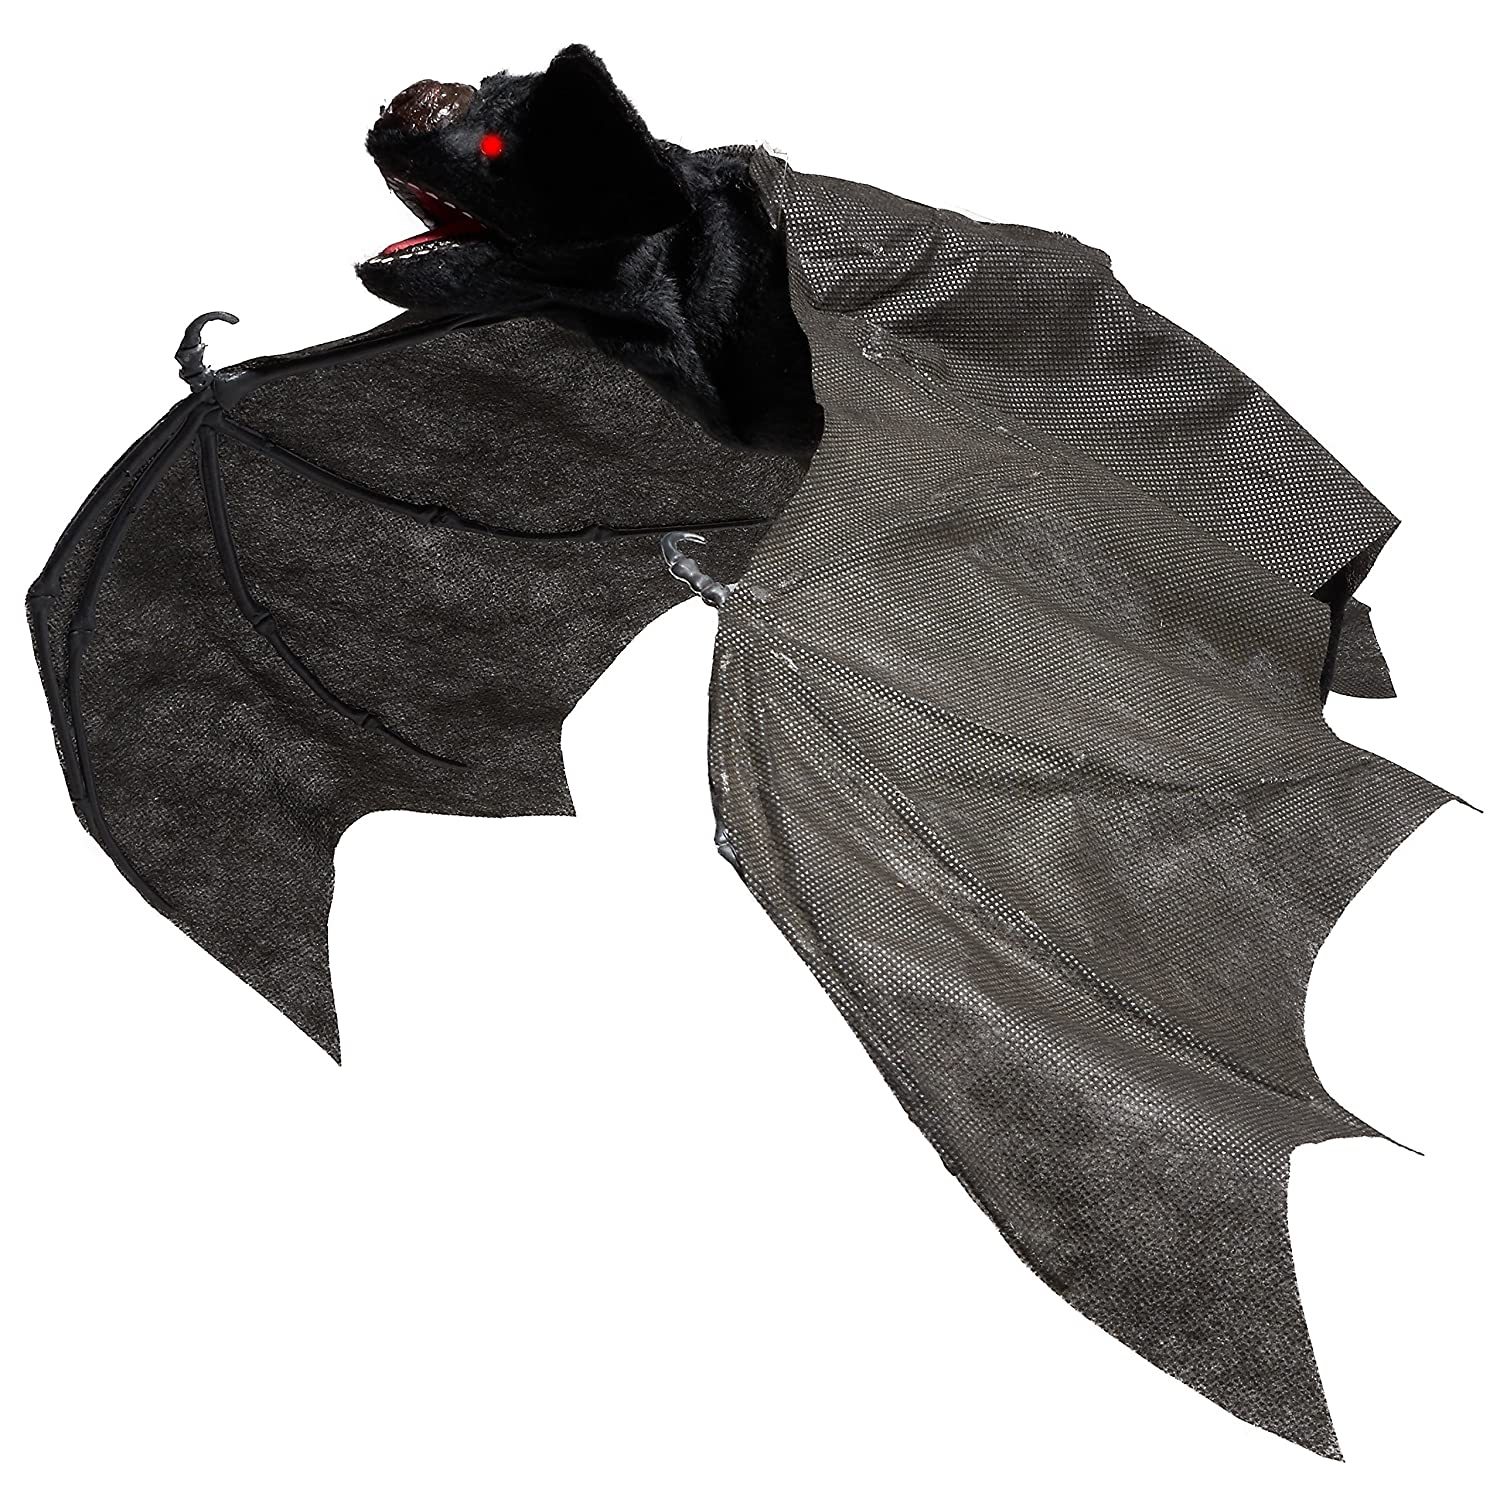 amazoncom prextex giant 30 animated hanging bat 30 wing span halloween decoration with maniacal laugh and screams built in motion sensor that detects - Animated Halloween Decorations